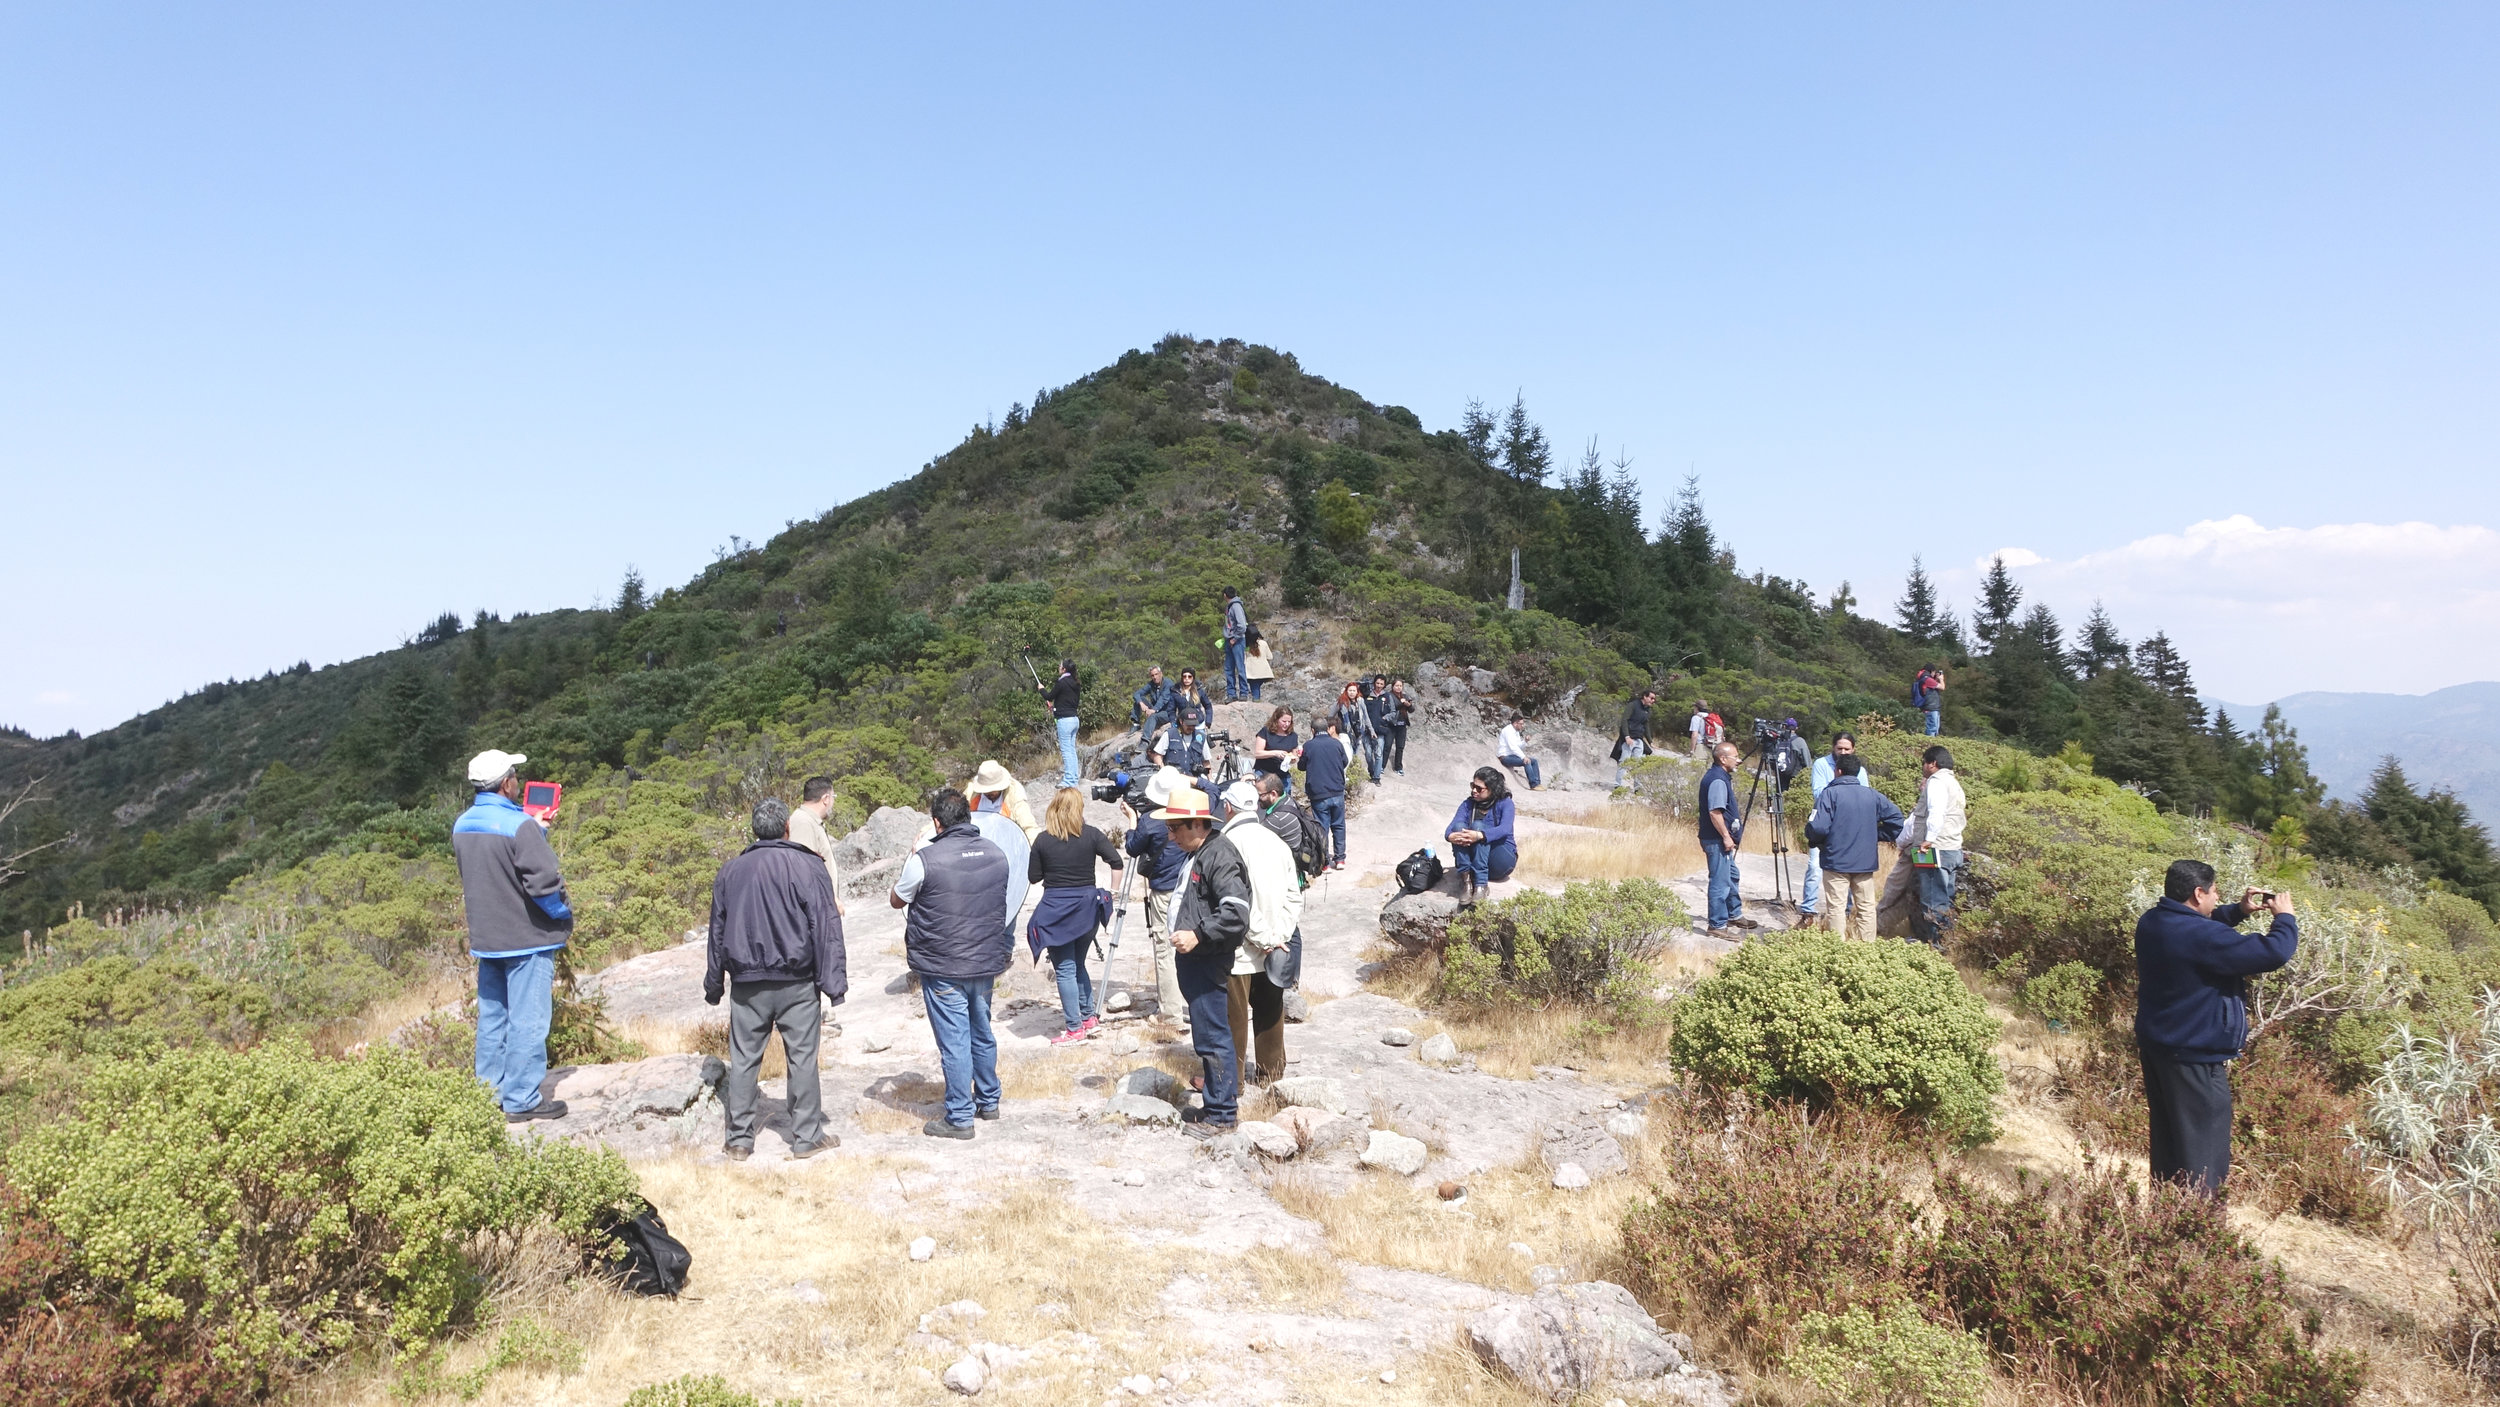 Journalists joined project leaders atop the Cero Pelon where the degradation is clearly visible